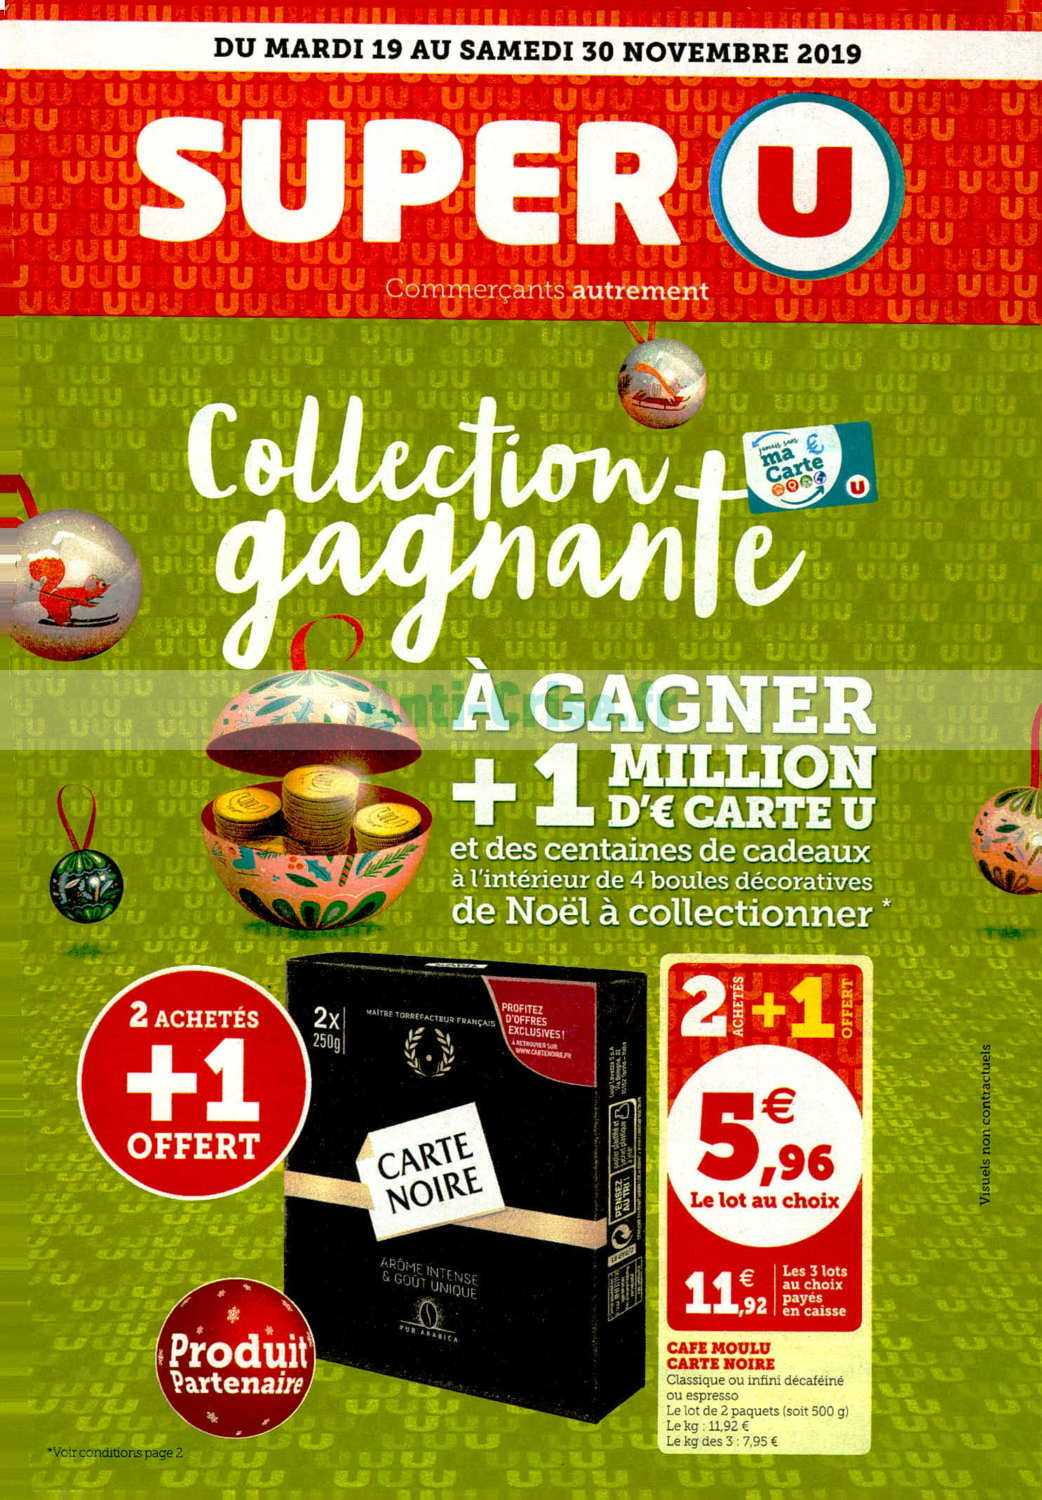 Catalogue Super U du 19 au 30 novembre 2019